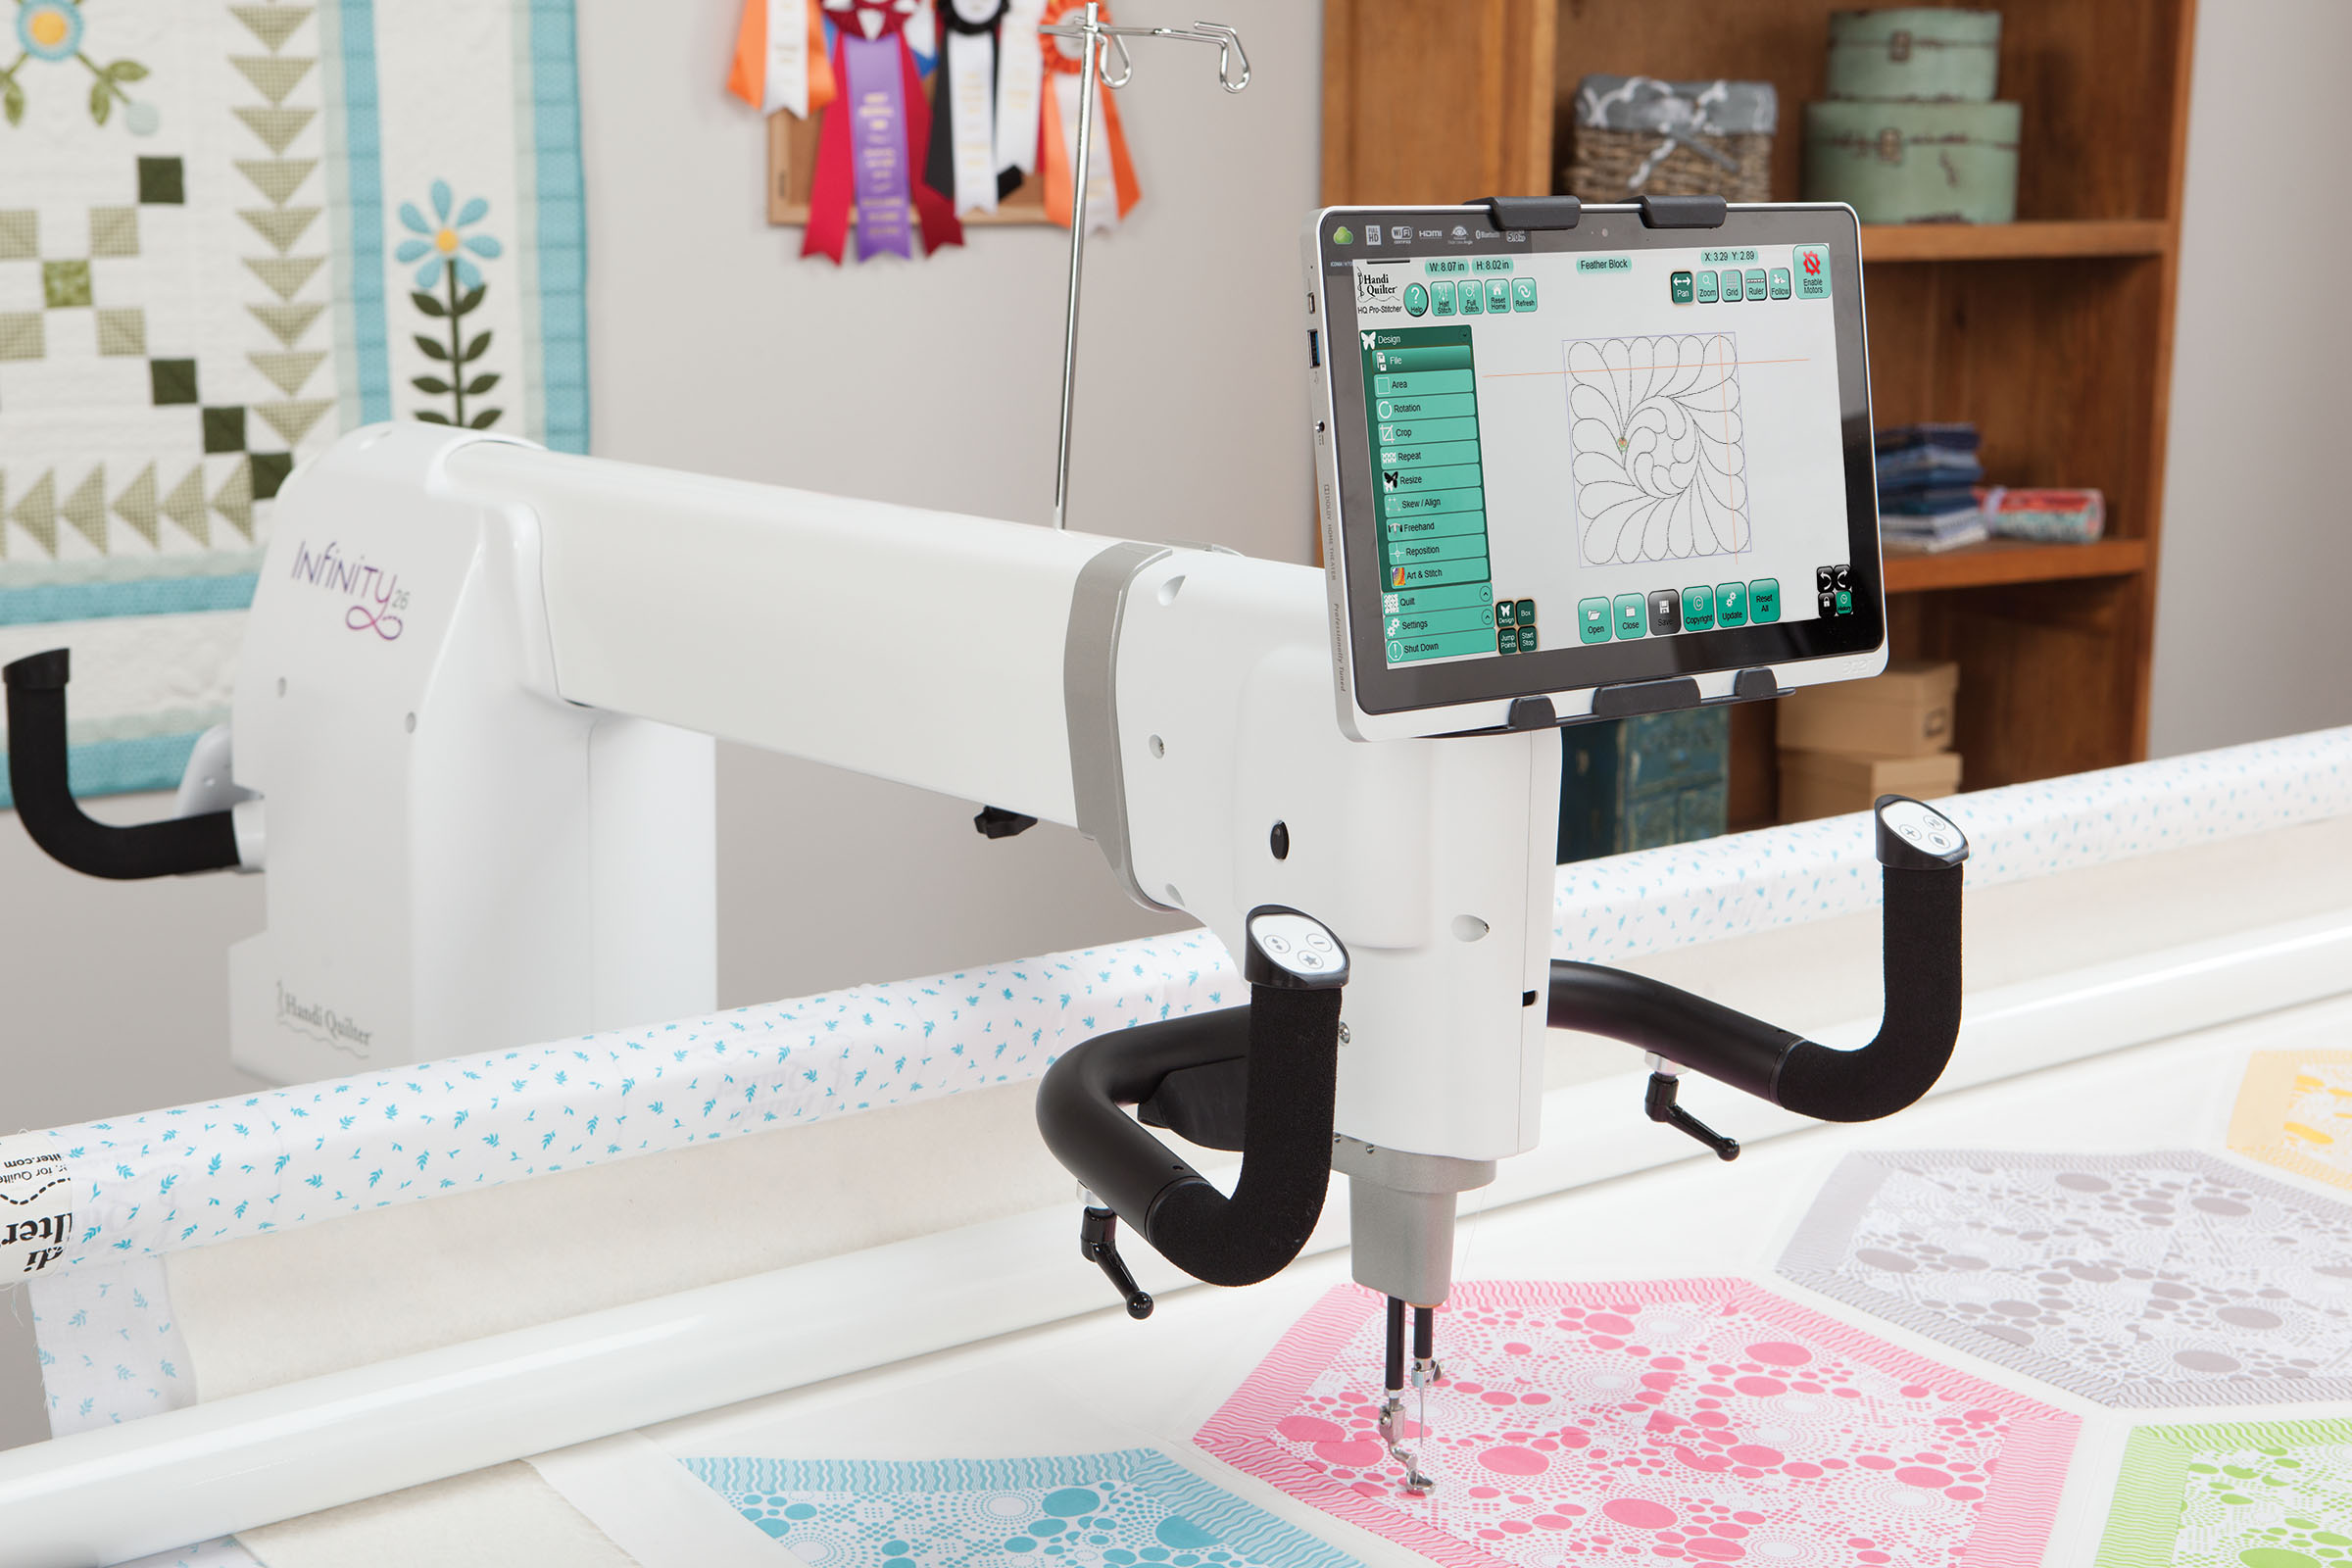 The creative possibilities of quilting are endless. Now, your longarm machine also provides endless opportunities. Introducing the HQ Infinity by Handi Quilter. Innovative features, from stitching speeds up to 3,100 precision stitches per minute to handlebars that can be tailored to how you like to quilt, establish the Infinity as best in class. Customizable settings, programmable presets and intuitive software give the Infinity the ability to work and grow with you.